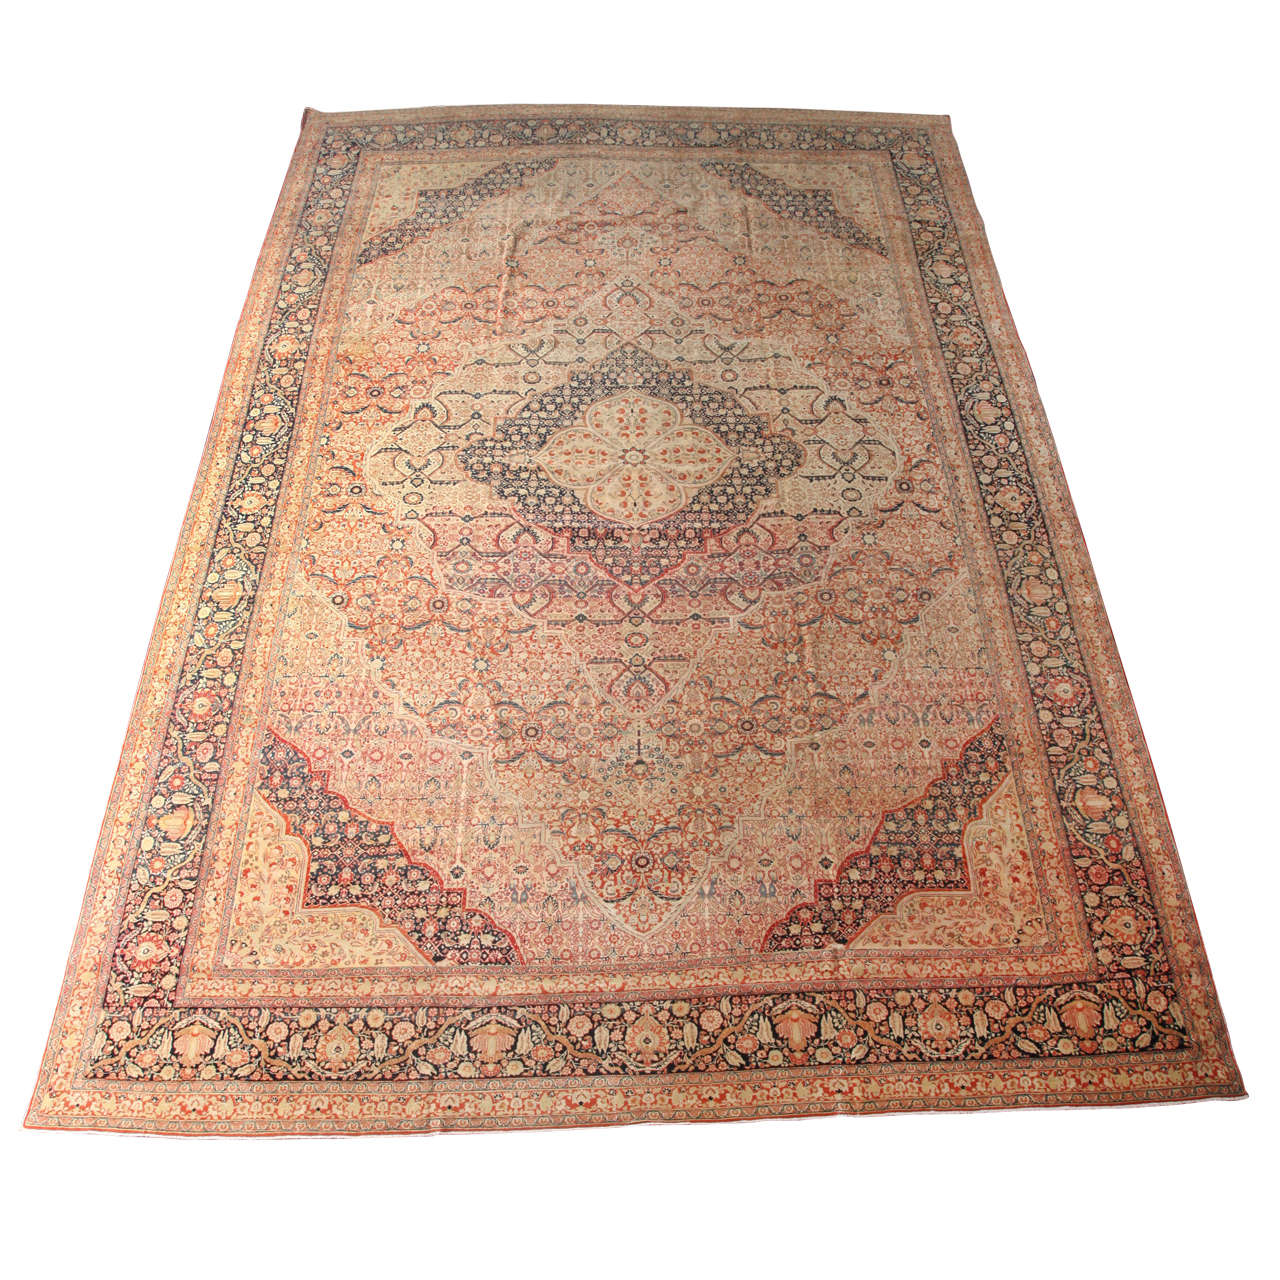 19th Century Persian Haji Jalili Tabriz Carpet with Woolen Pile and Natural Dyes